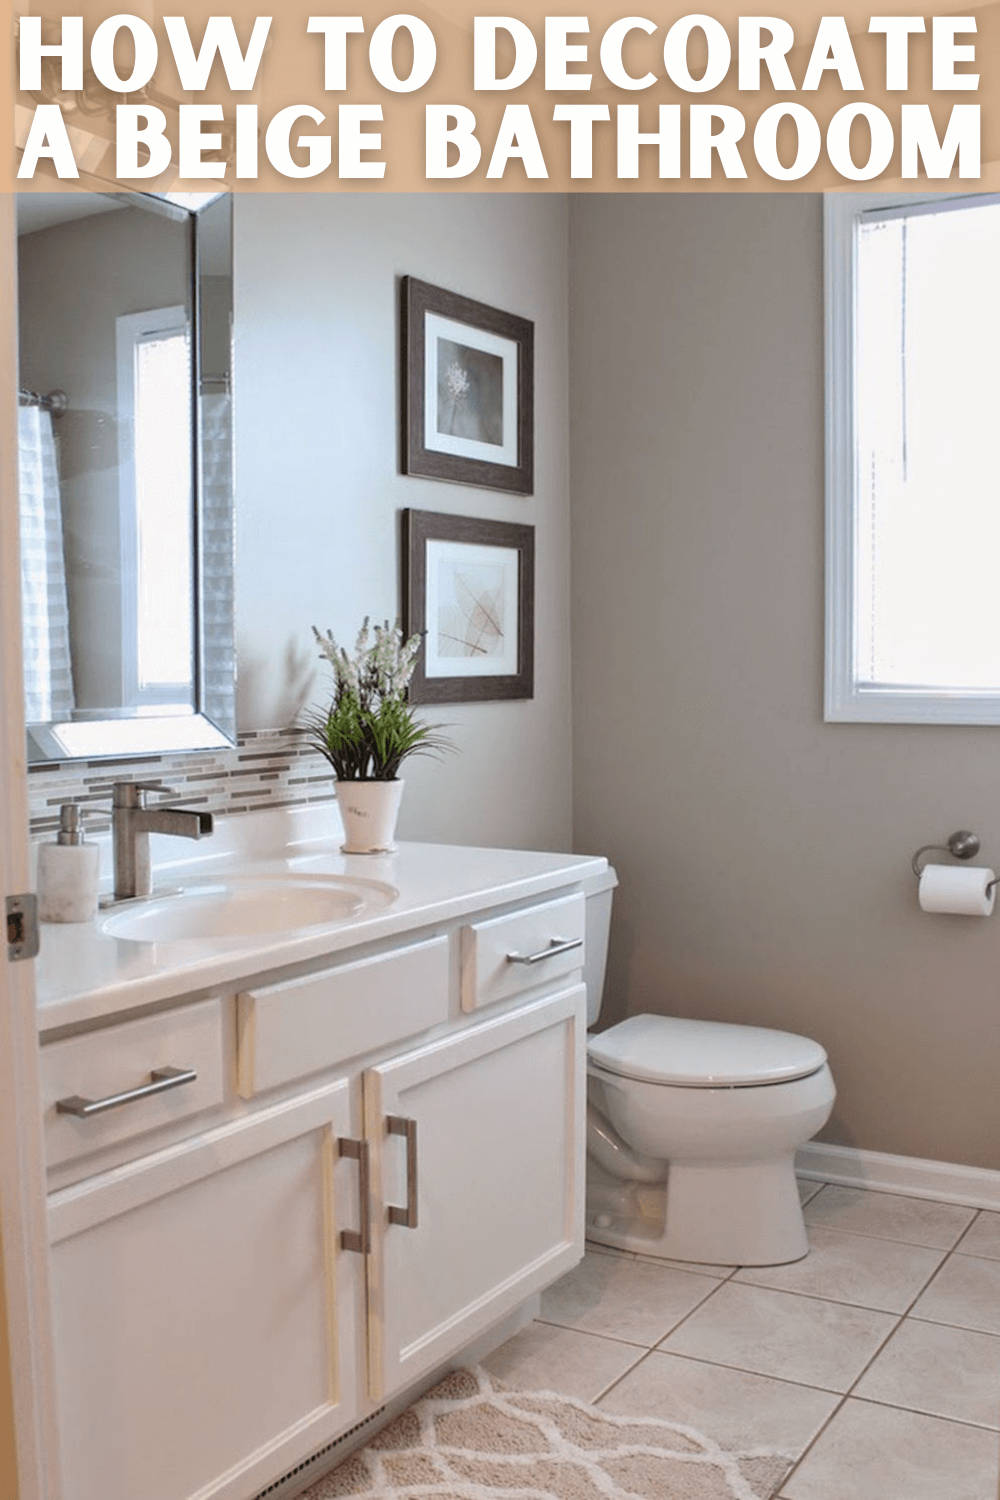 HOW TO DECORATE A BEIGE BATHROOM